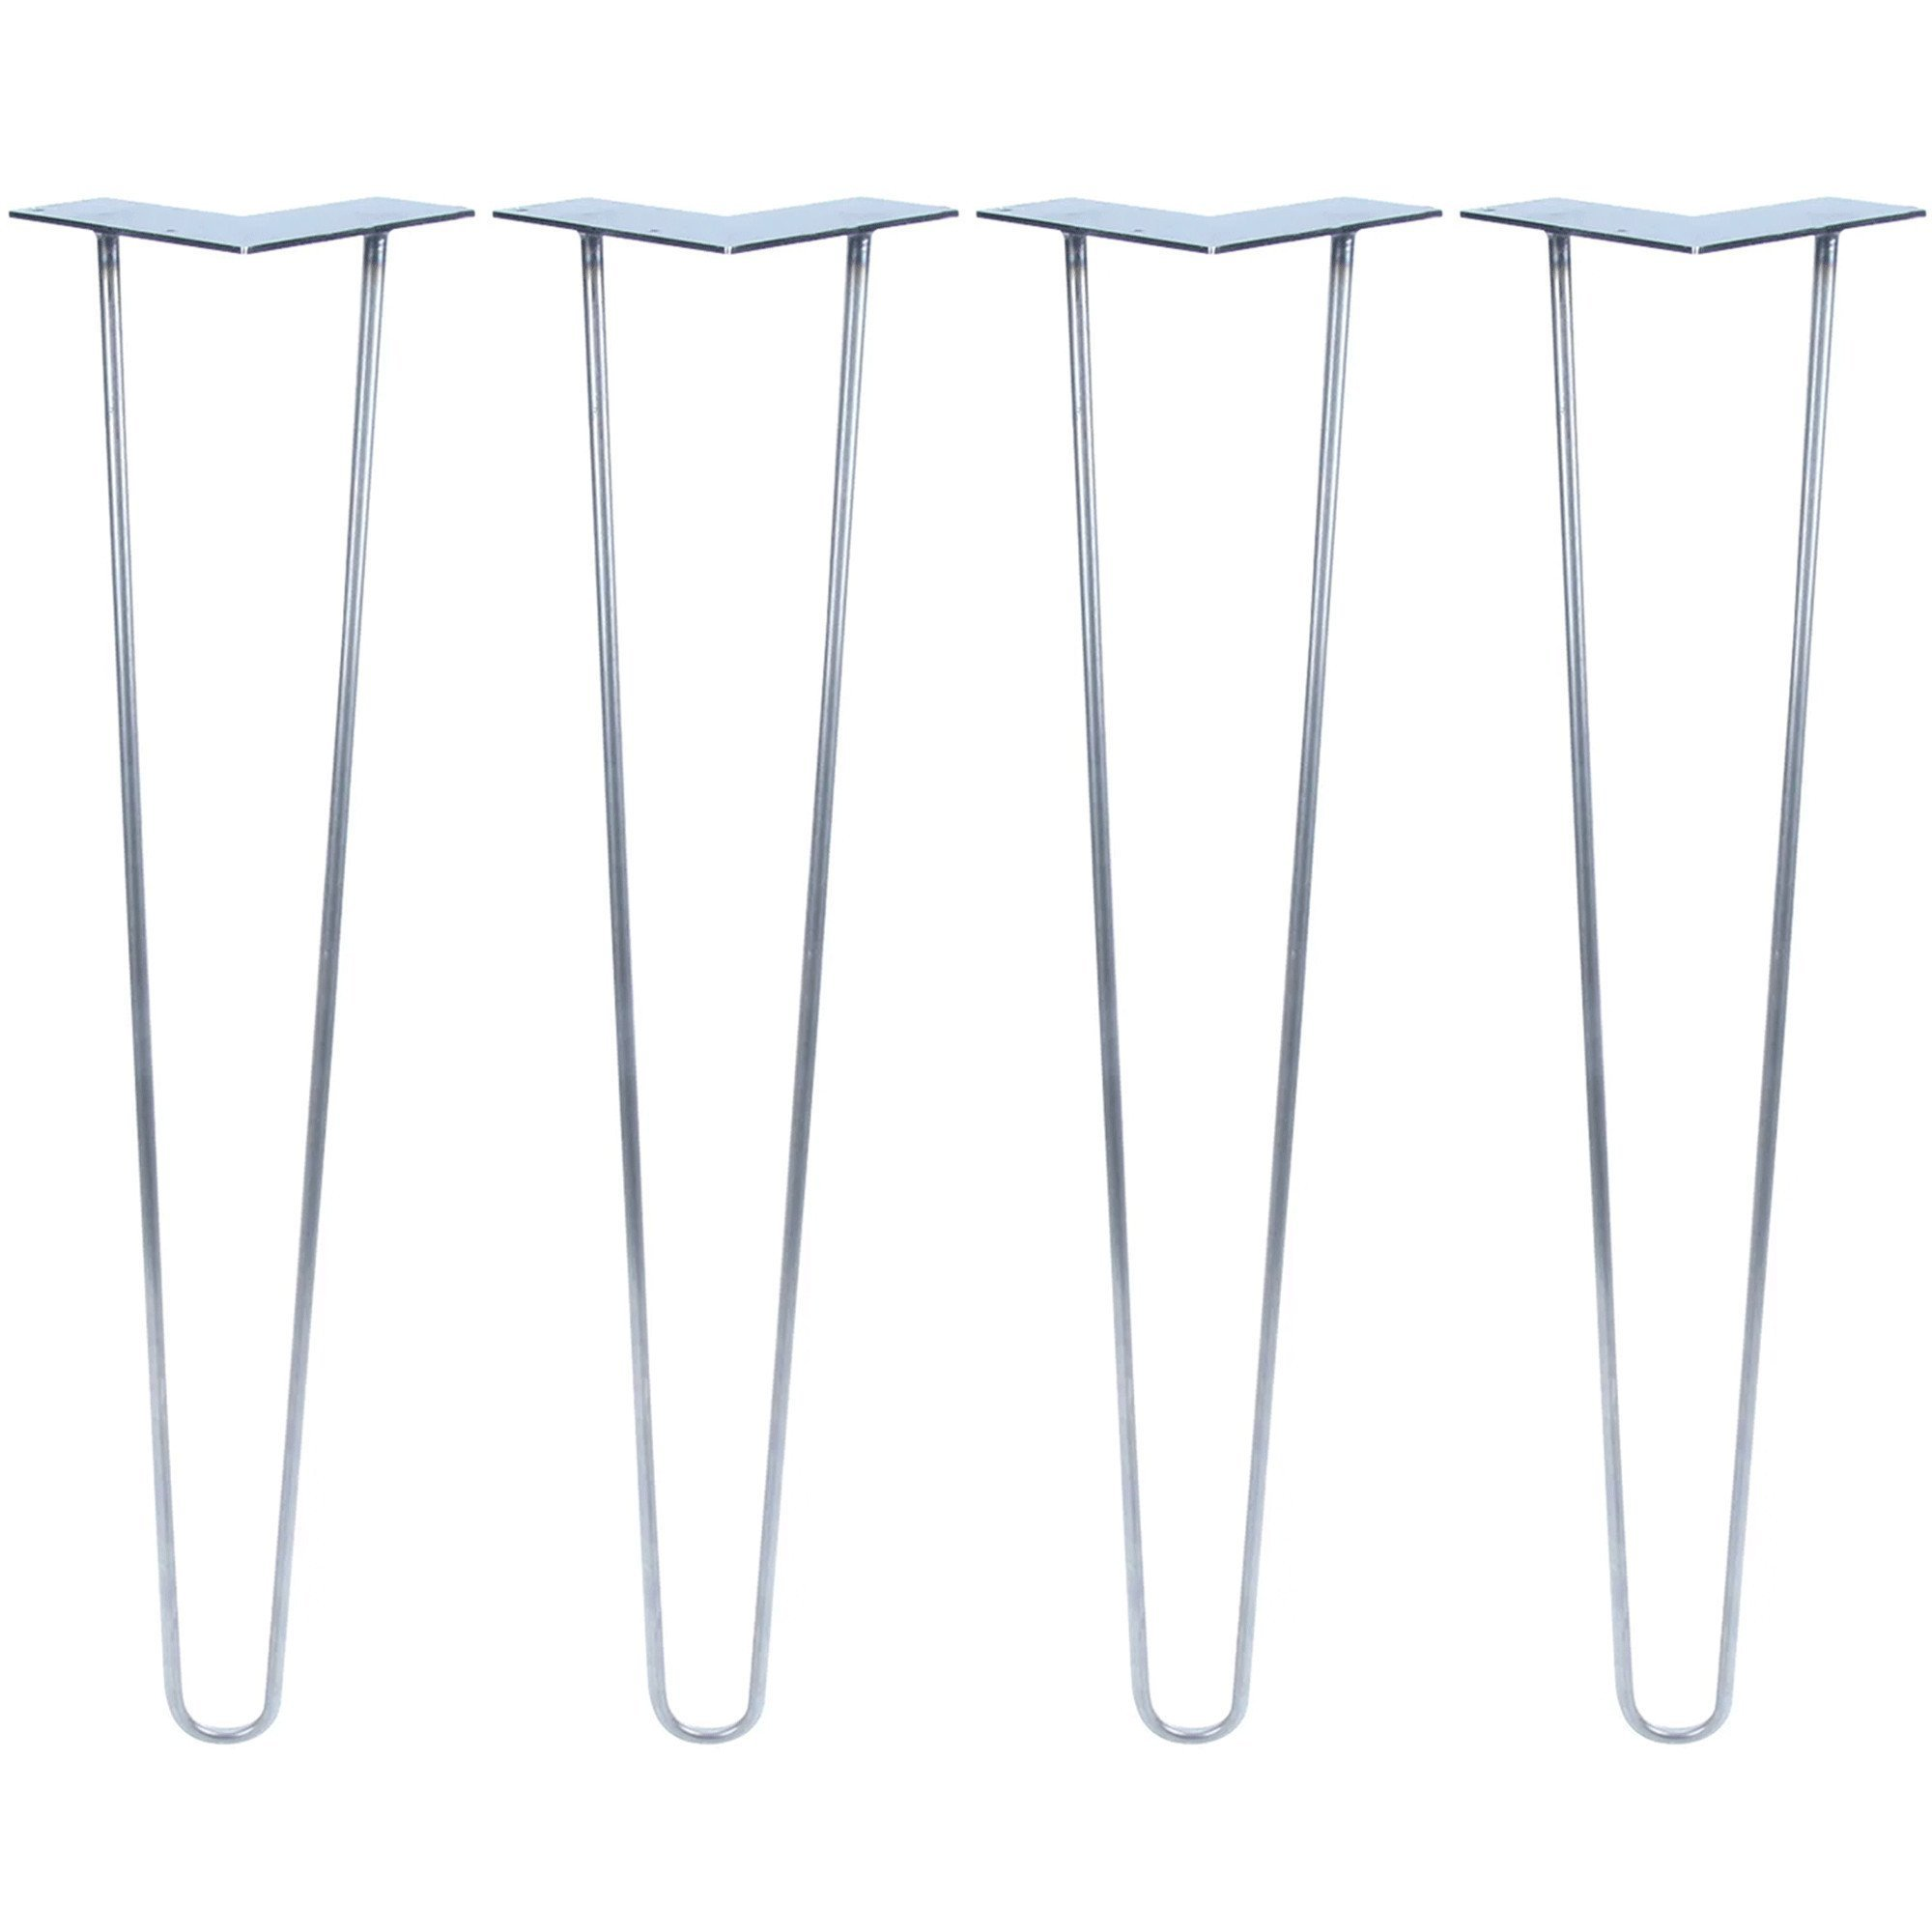 18 inch 2 Rod HD, Raw Steel Hairpin Legs Black 1/2'' Thick, Heavy Duty Set of 4 Legs, 4 Floor Protectors, 16 Screws - for Modern Coffee Table, Mid Century or Rustic Tables Legs